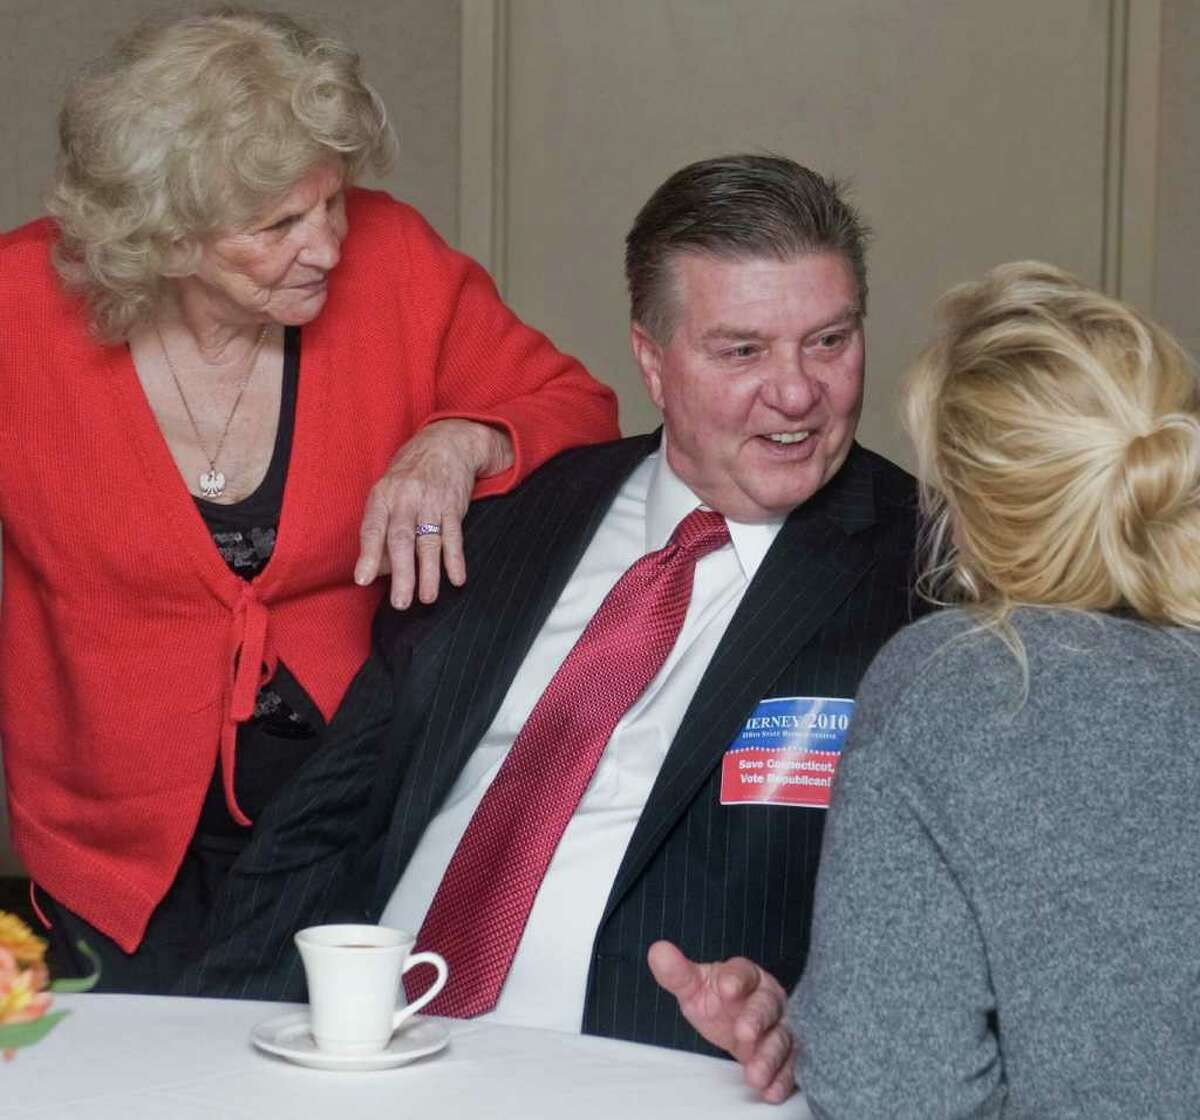 Lydia Yaglenski, 33 years on the Danbury Republican Town Committee, leans on candidate Terry Tierney for the 110th district as he chats with Cindy Palanzo of Danbury at the Republican Headquarters in the Maron Hotel. Tuesday, Nov. 2, 2010